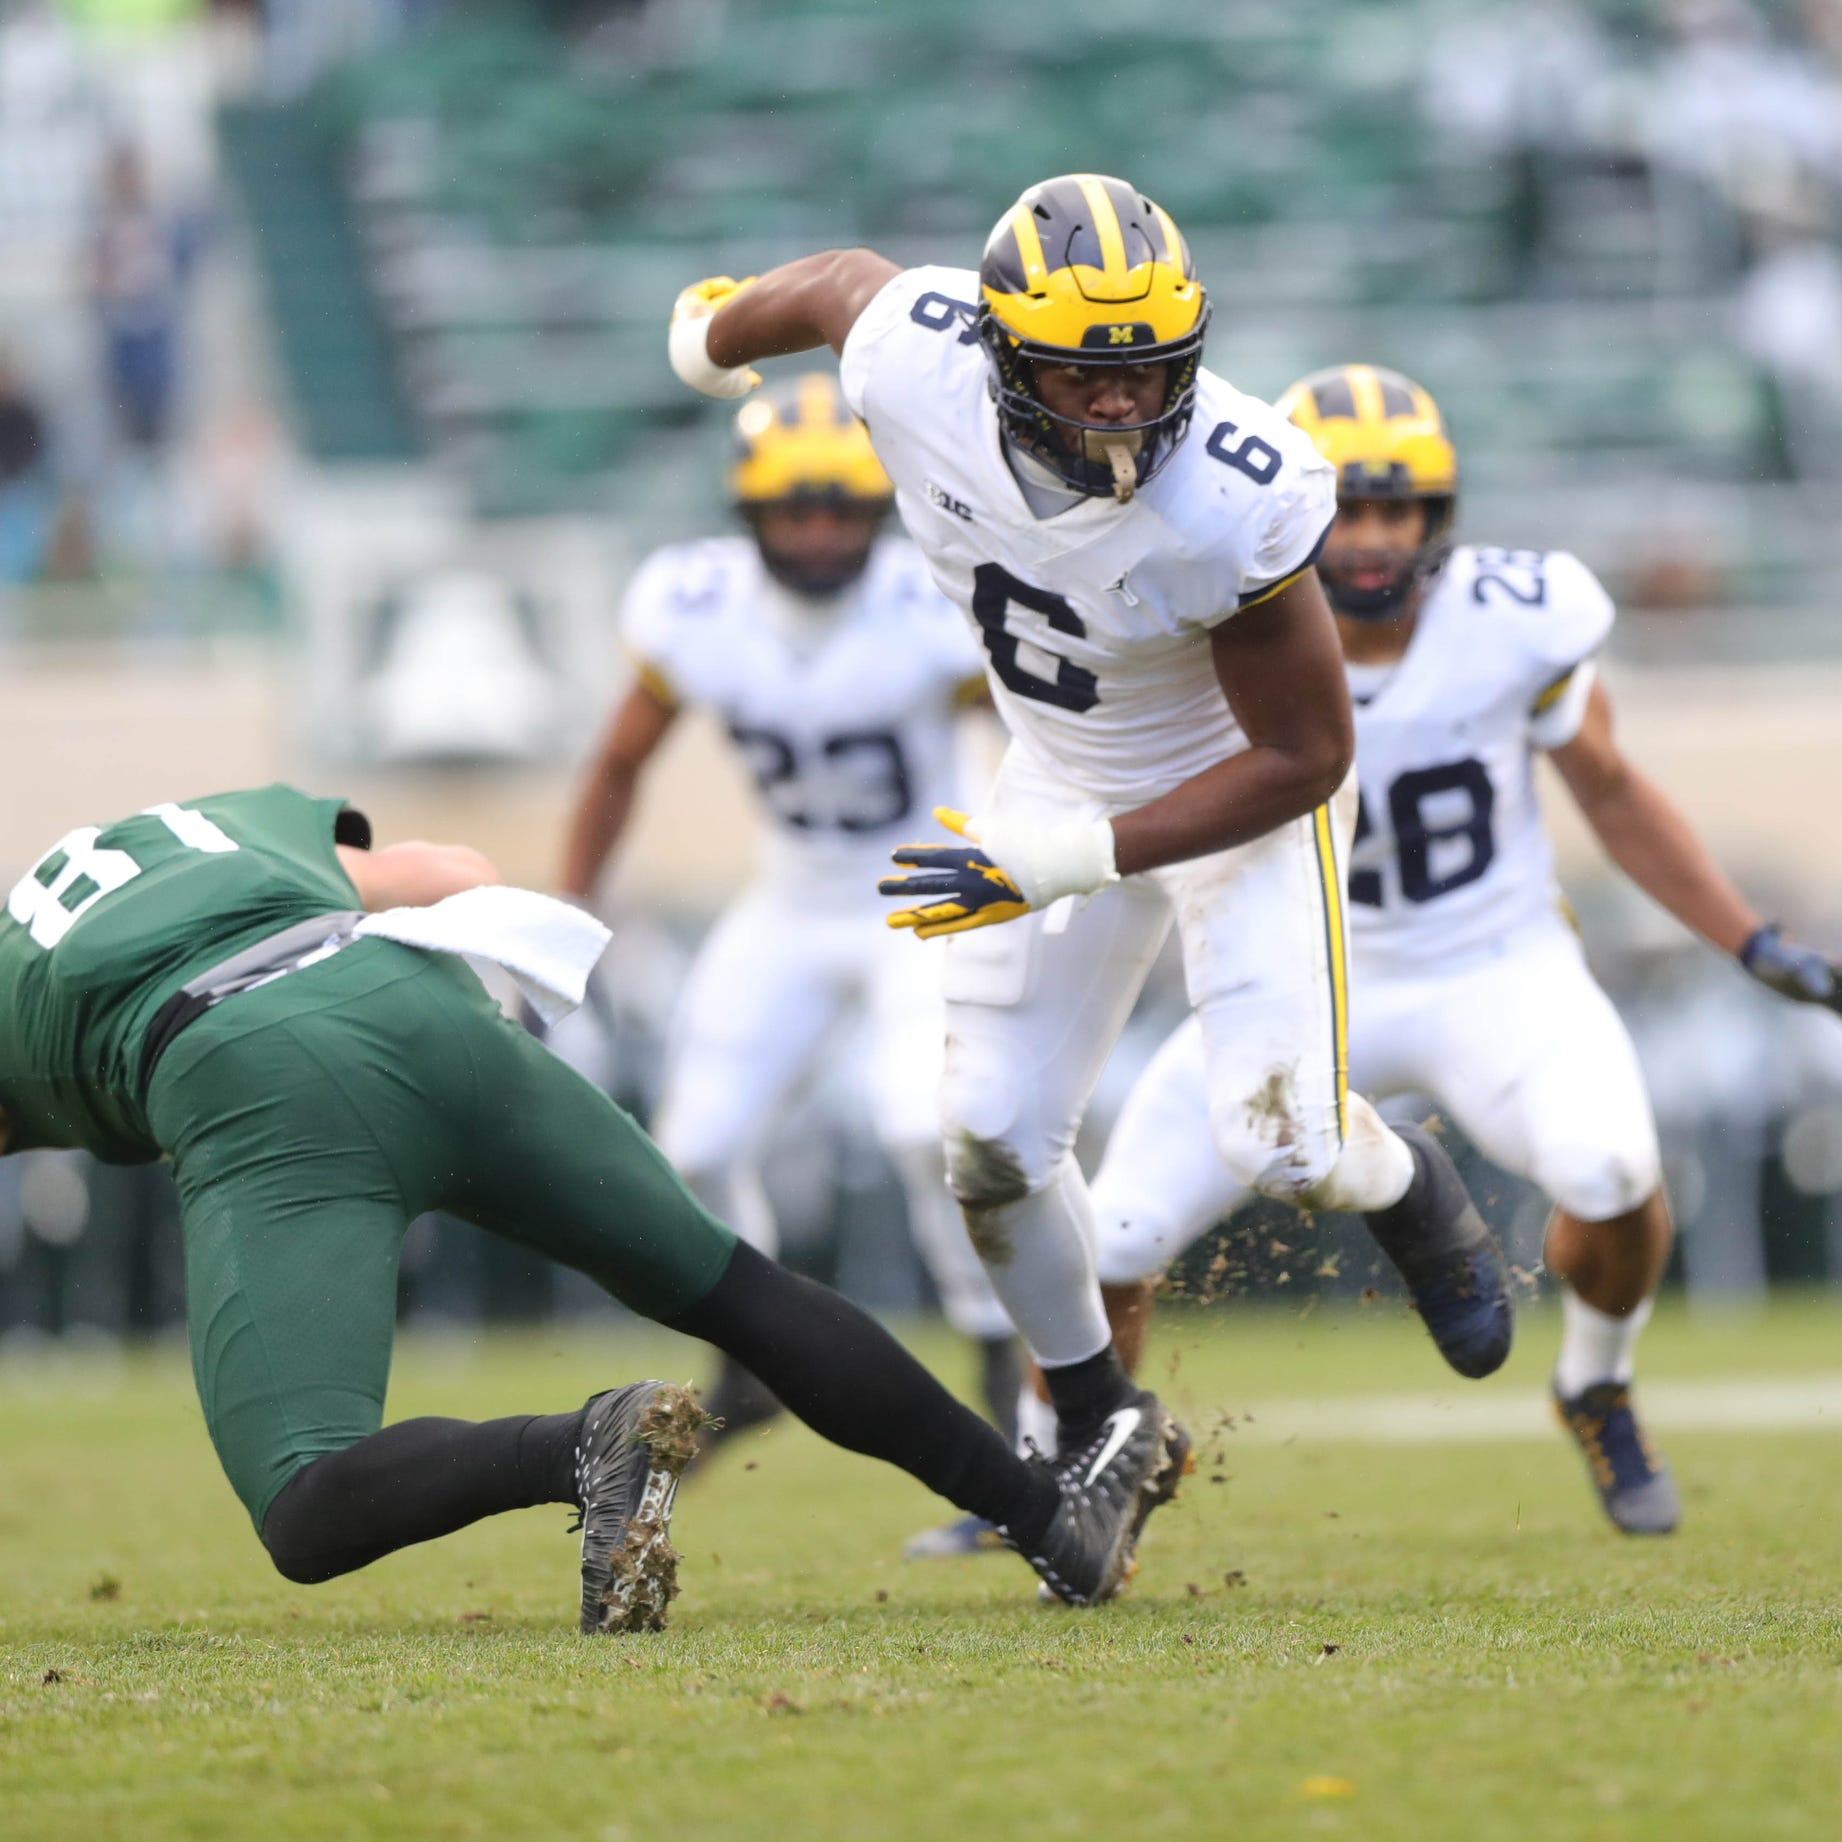 Michigan football cements itself as playoff contender by dominating MSU